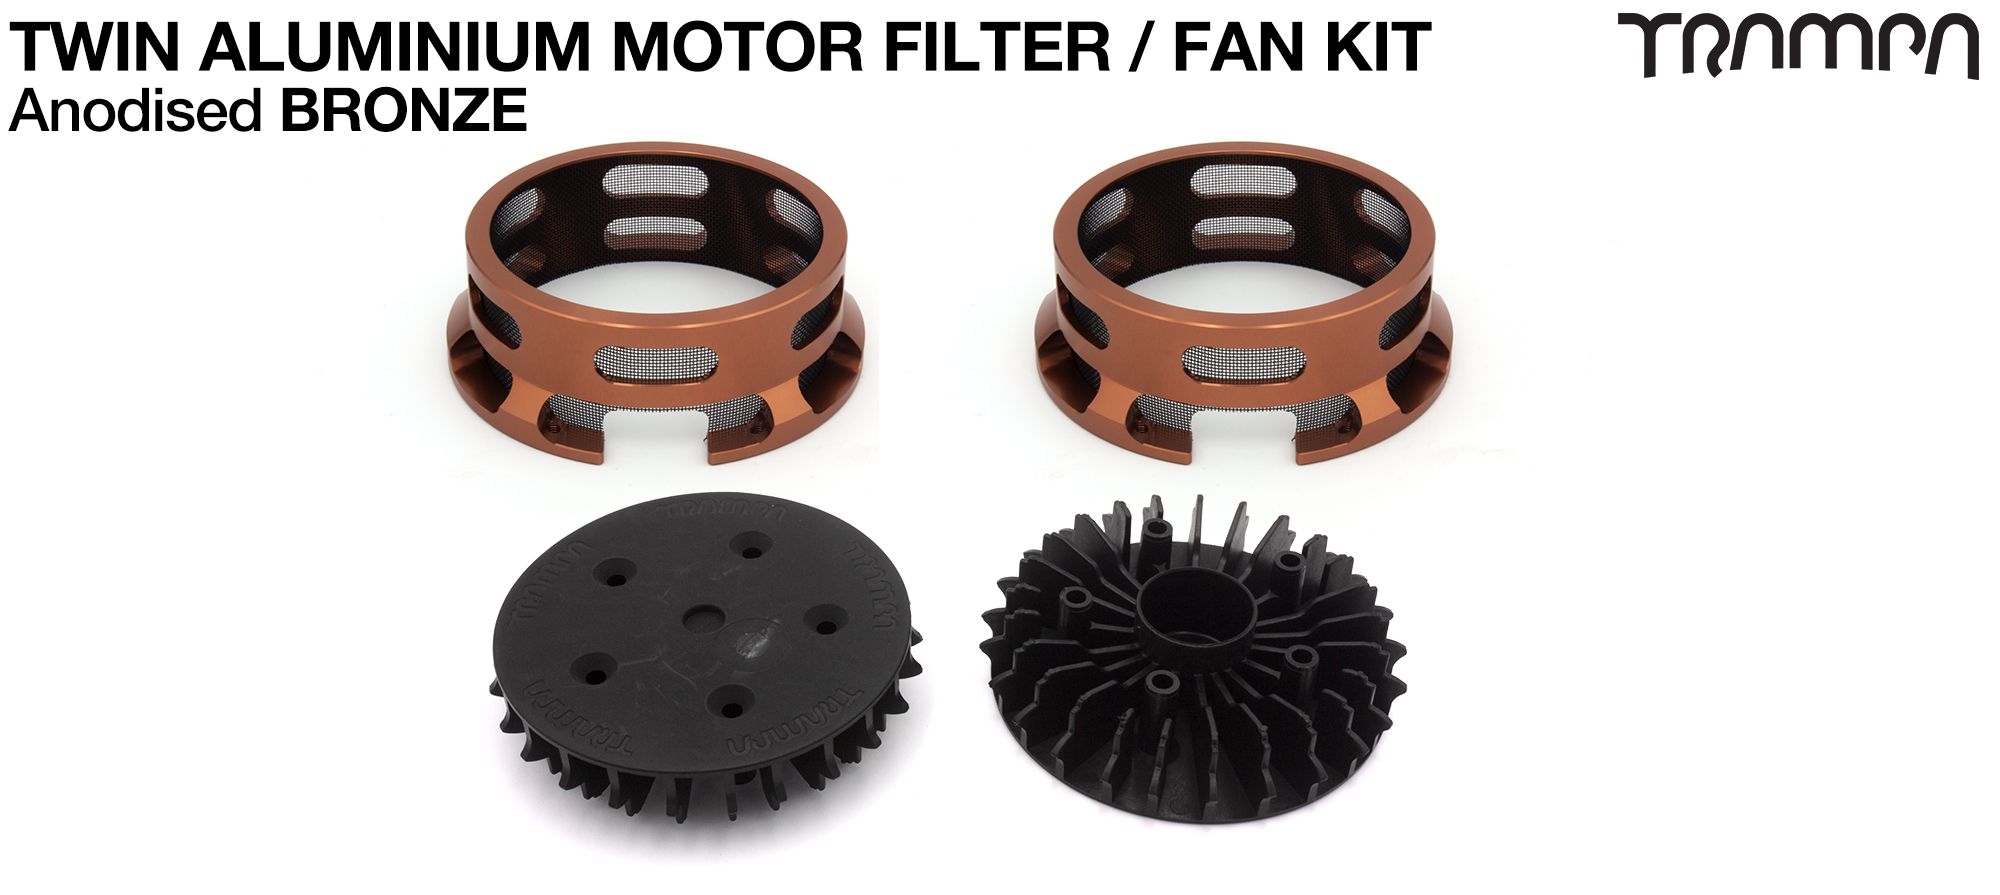 14FiFties BLACK Motor protection Housing with BRONZE particle Filter & Fan - TWIN